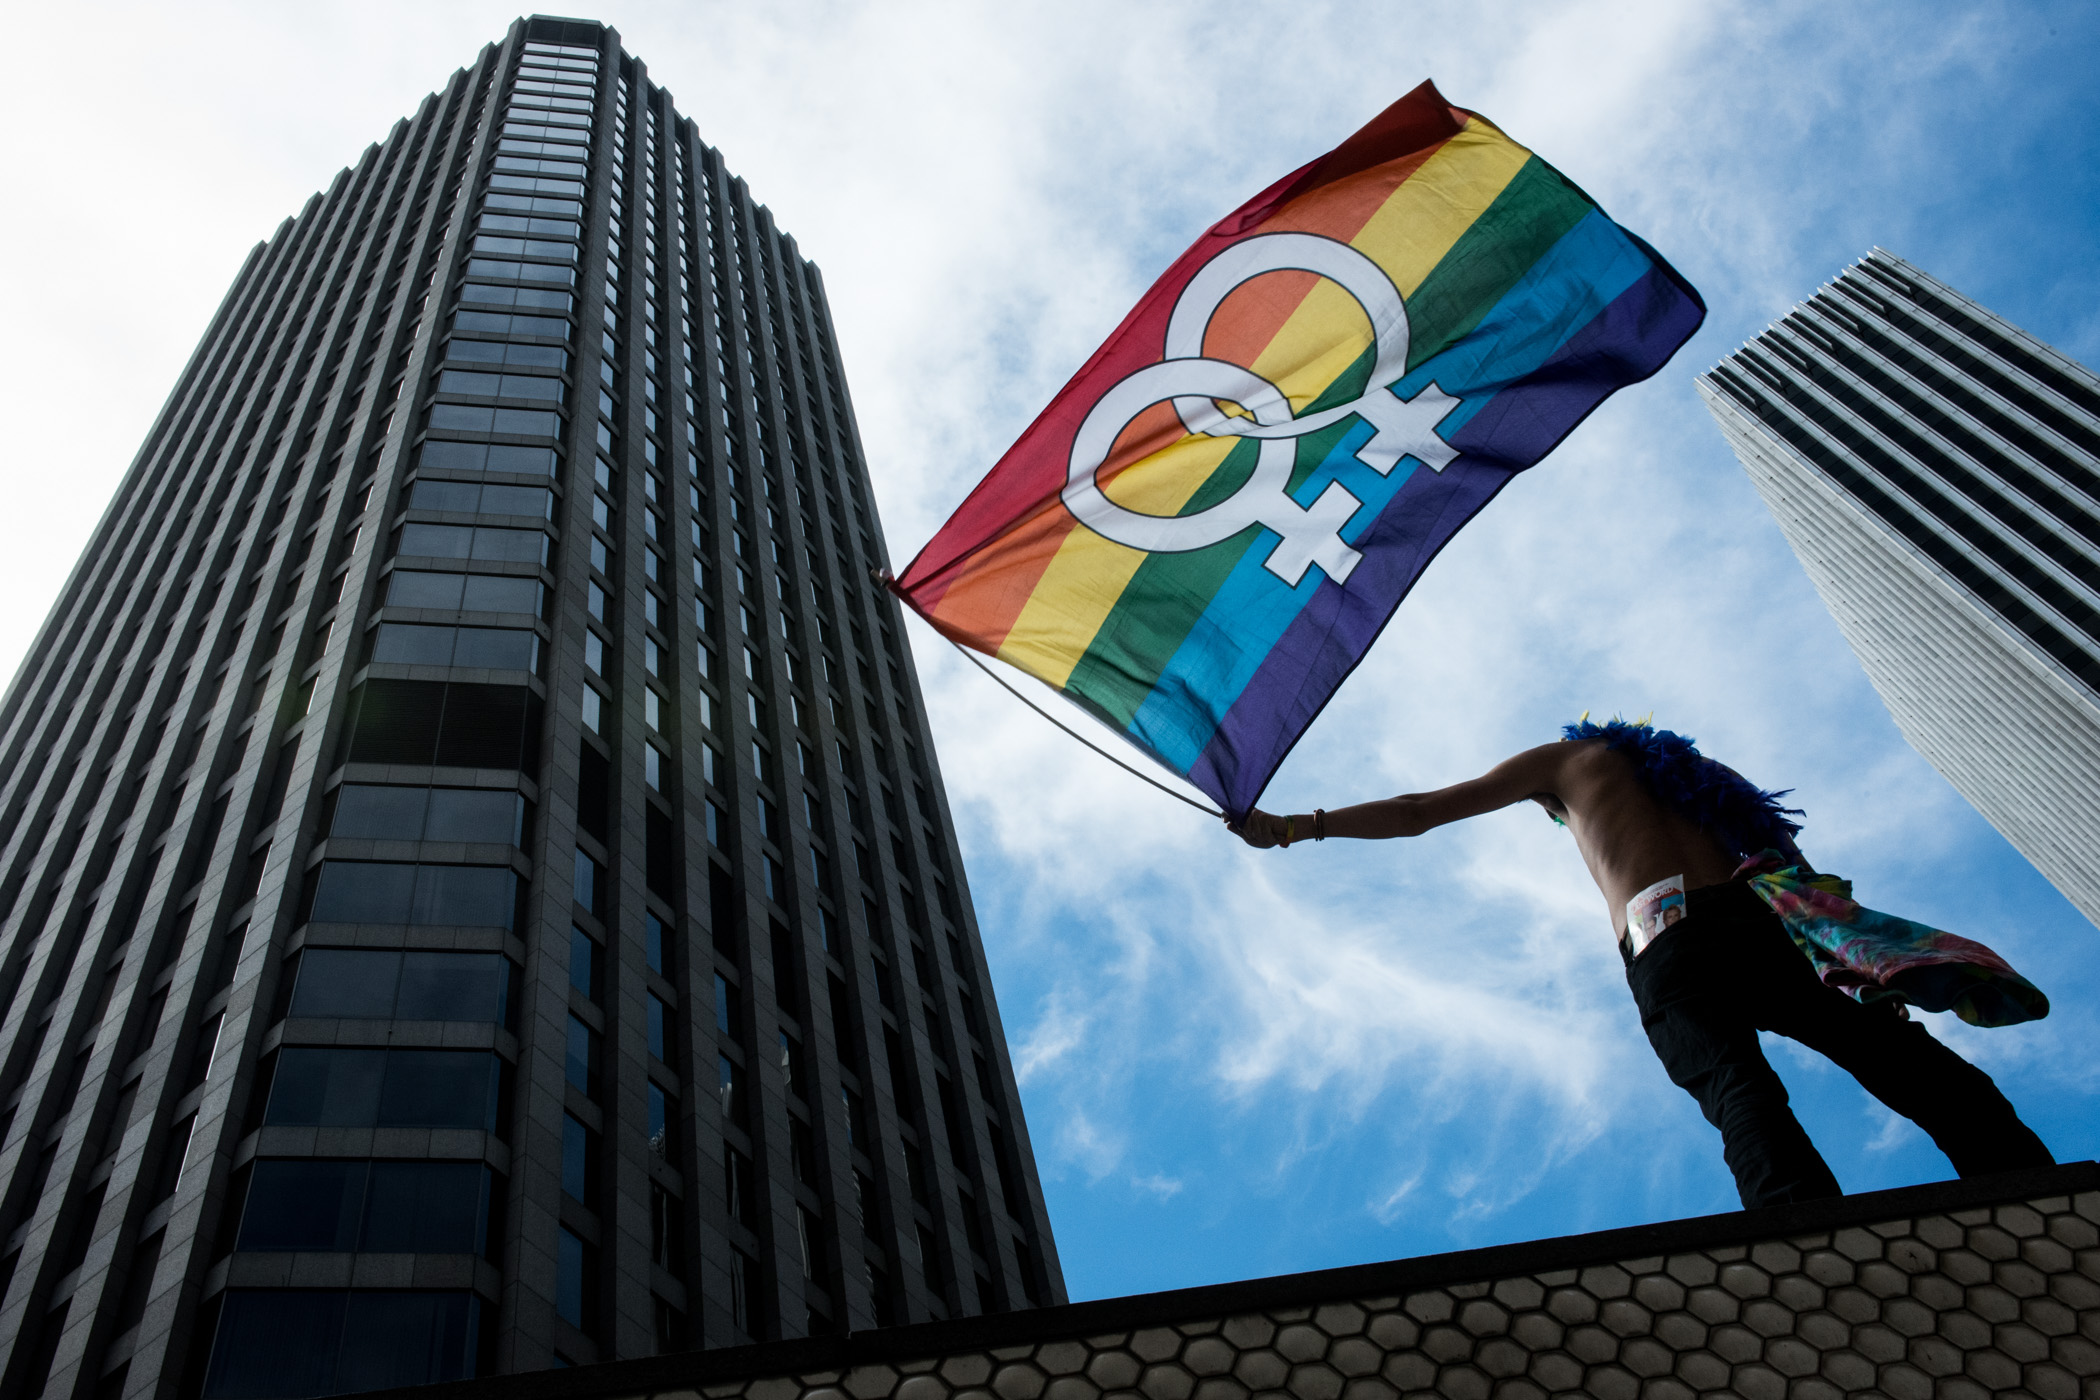 Napa Valley resident, Daniel Leonie, waves a Gay Pride flag during the San Francisco Pride event on Sunday, June 28, 2015. (Michael Ares / Special to the S.F. Examiner)